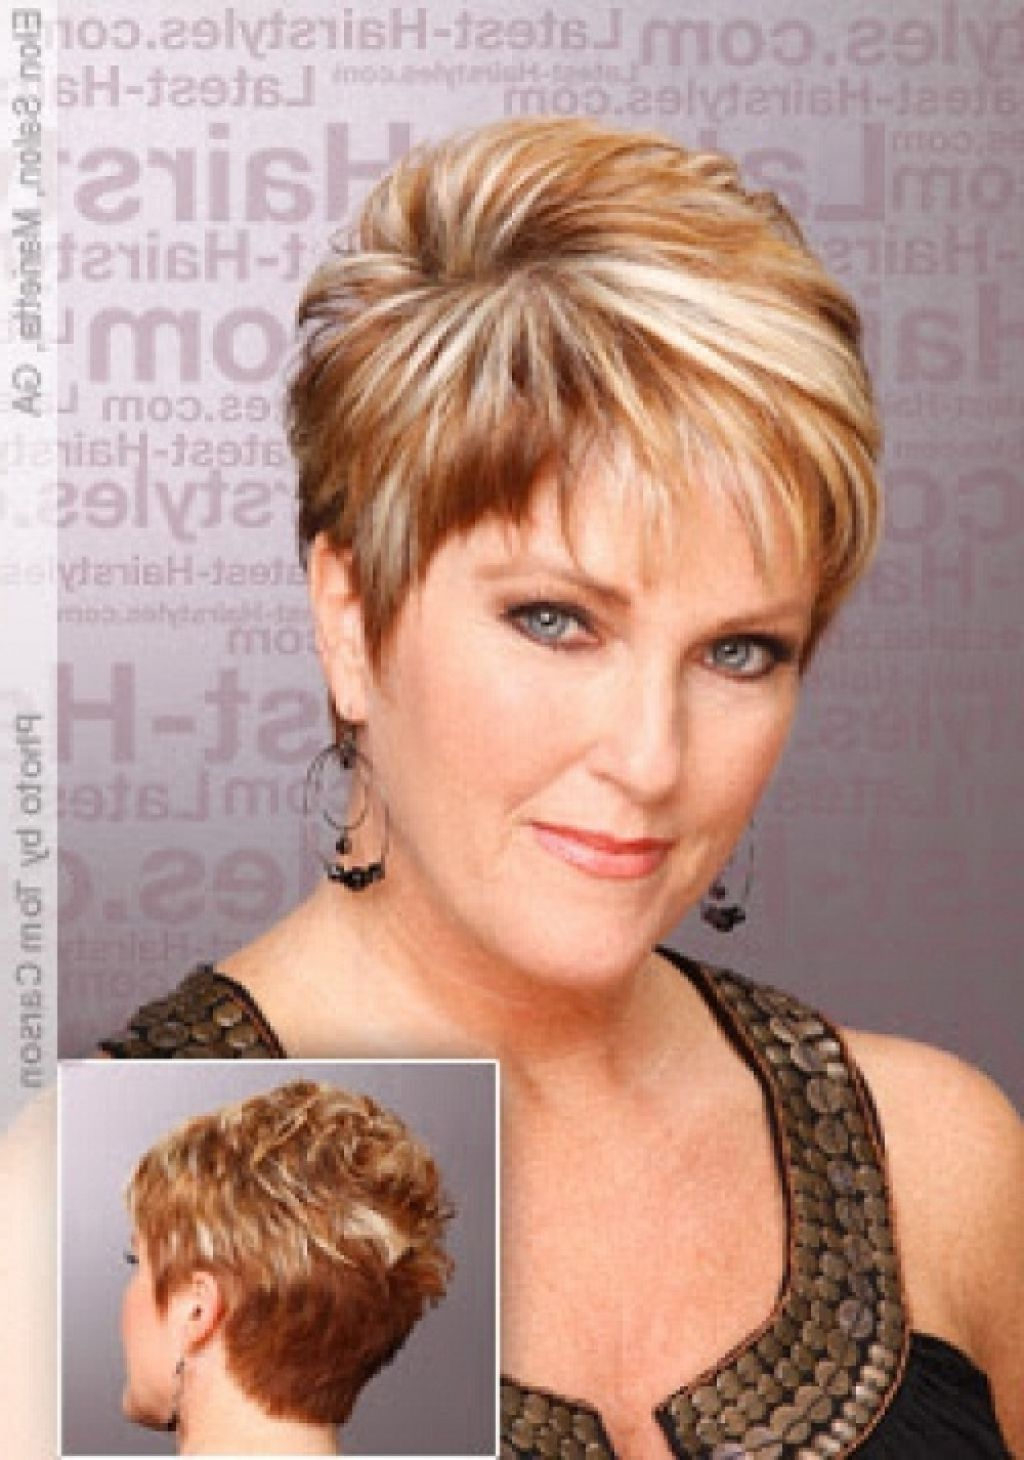 ? 24+ Awesome Short Hairstyles For Thick Hair Round Face: Quick With Regard To Short Hairstyles For Round Face (View 24 of 25)